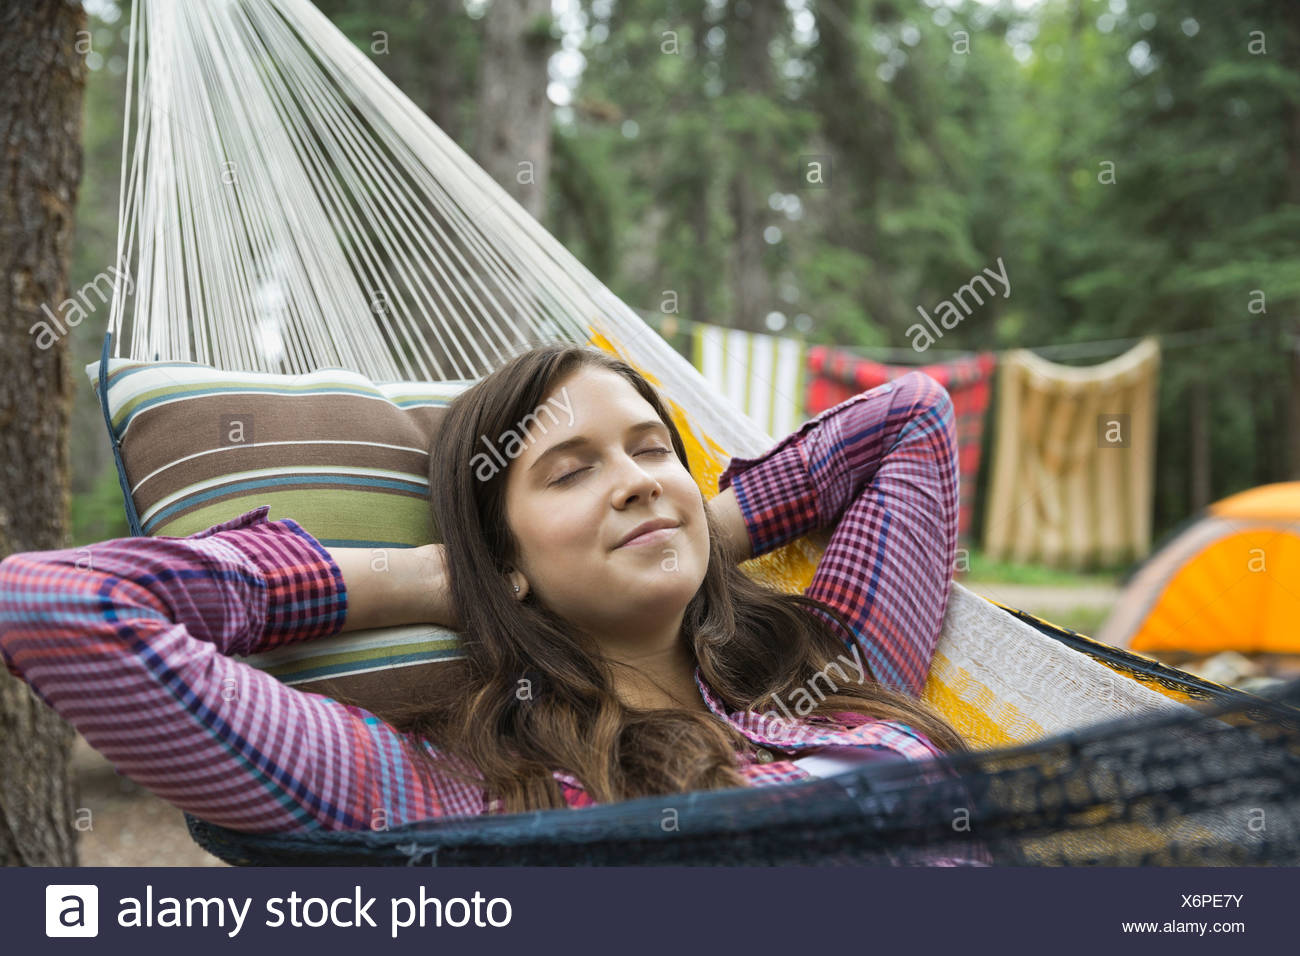 Teenage girl relaxing on hammock at campsite - Stock Image